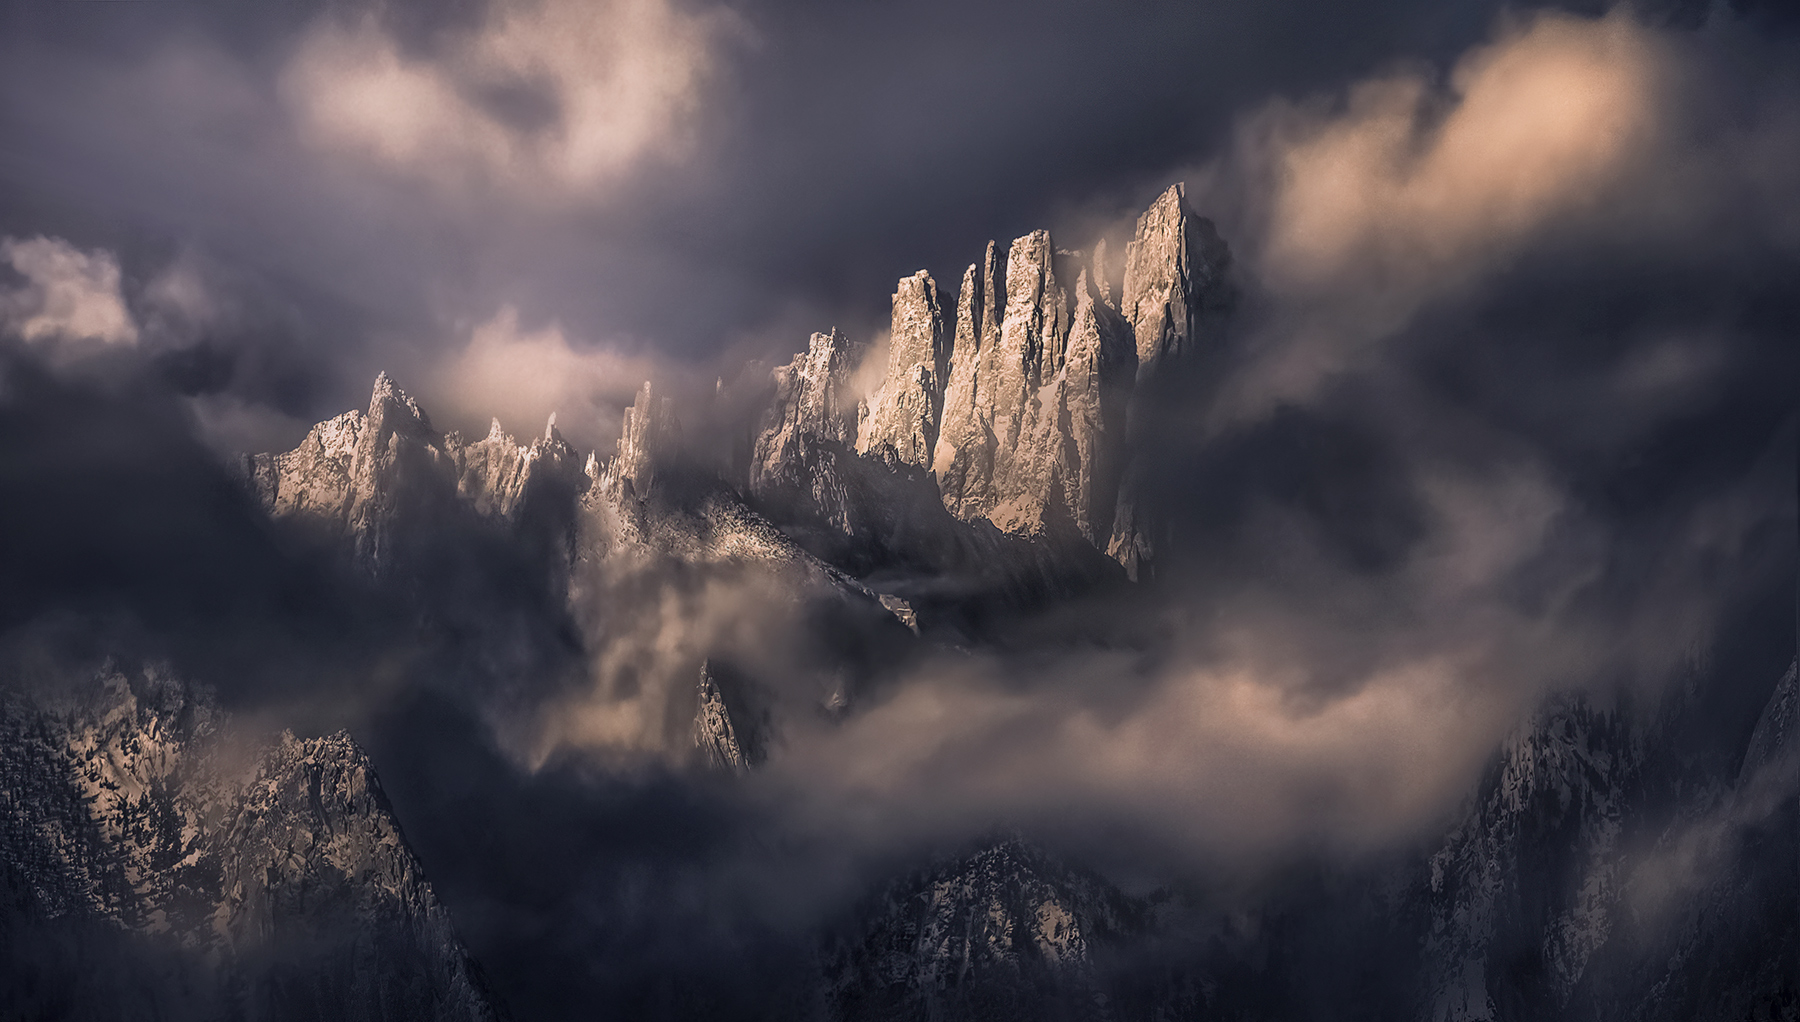 The pinnacle of mountain photography is the clearing storm. Duringthis clearing storm the pinnacles stole the show...